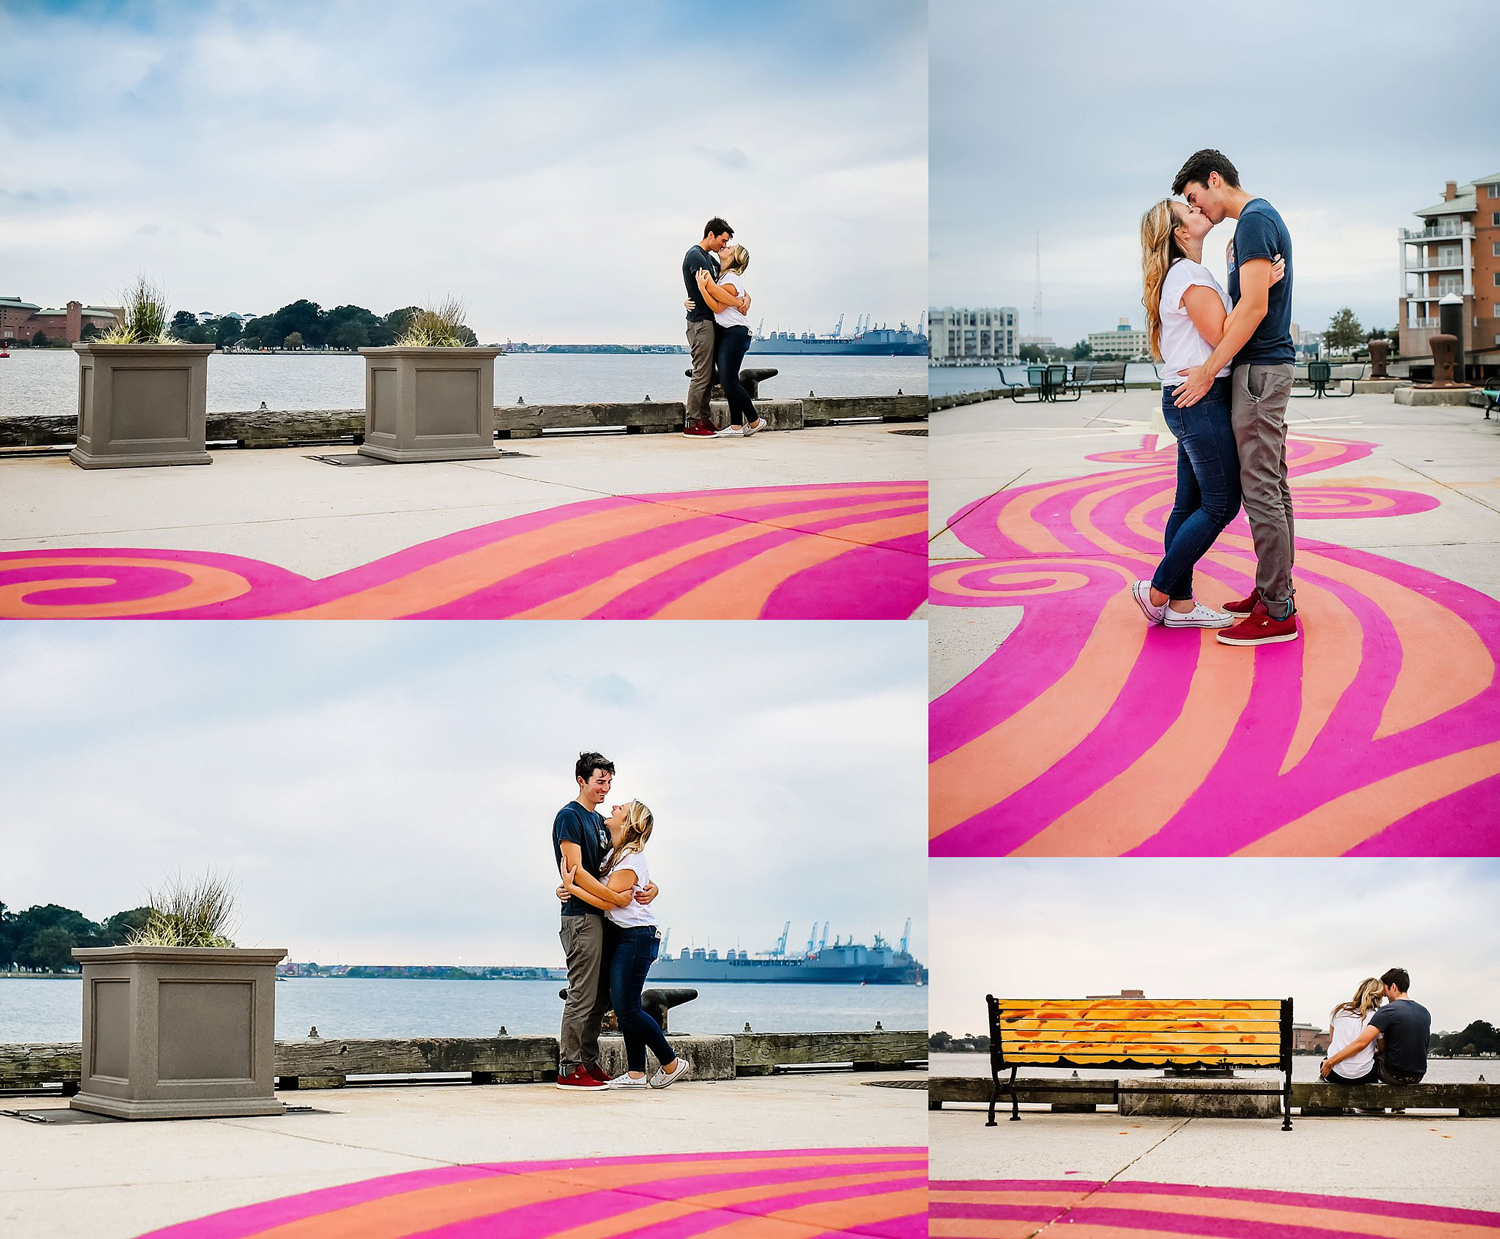 creative-engagement-pics-norfolk-arts-district-melissa-bliss-photography.jpg